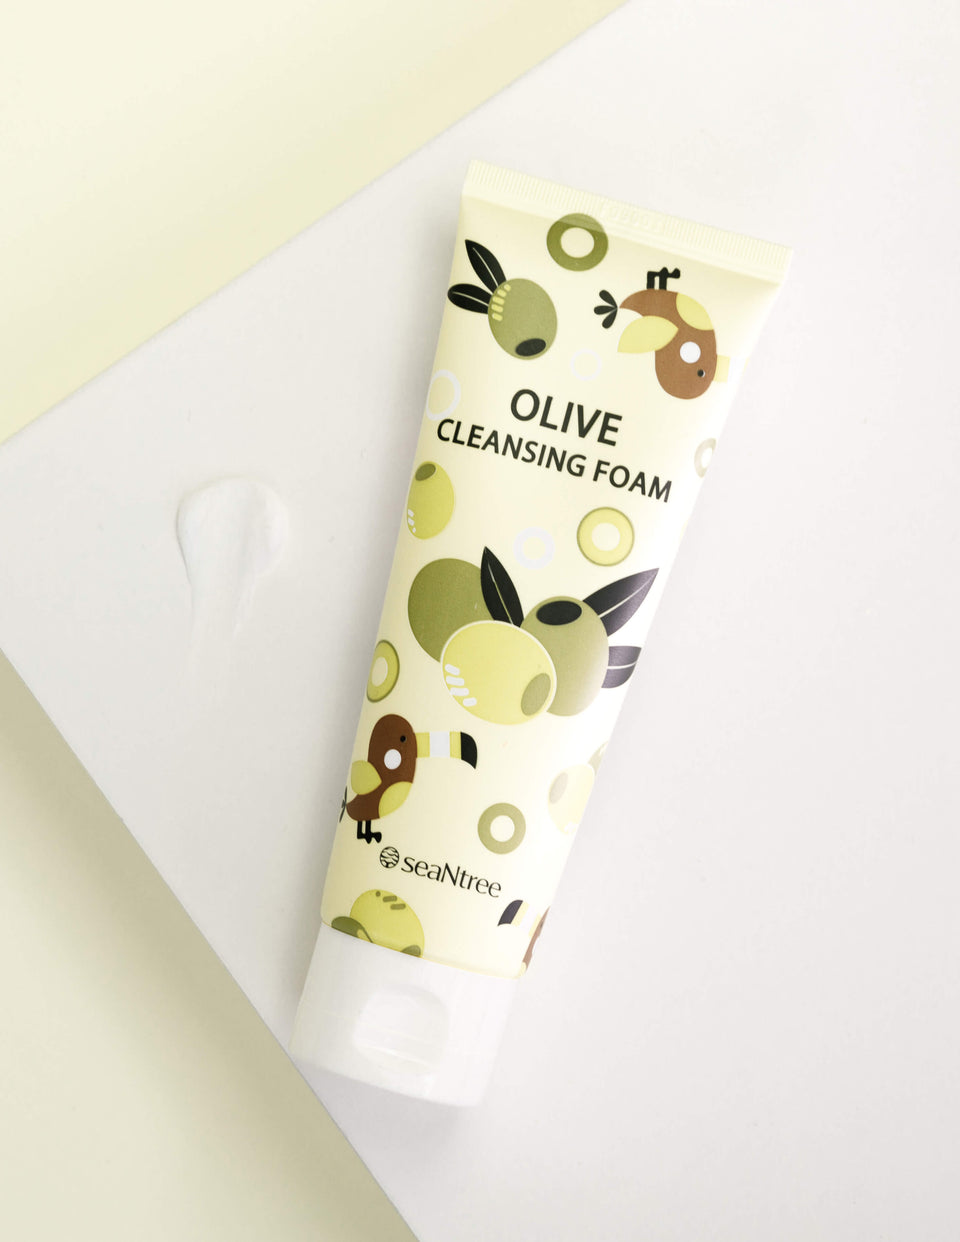 Olive Cleansing Foam 120ml